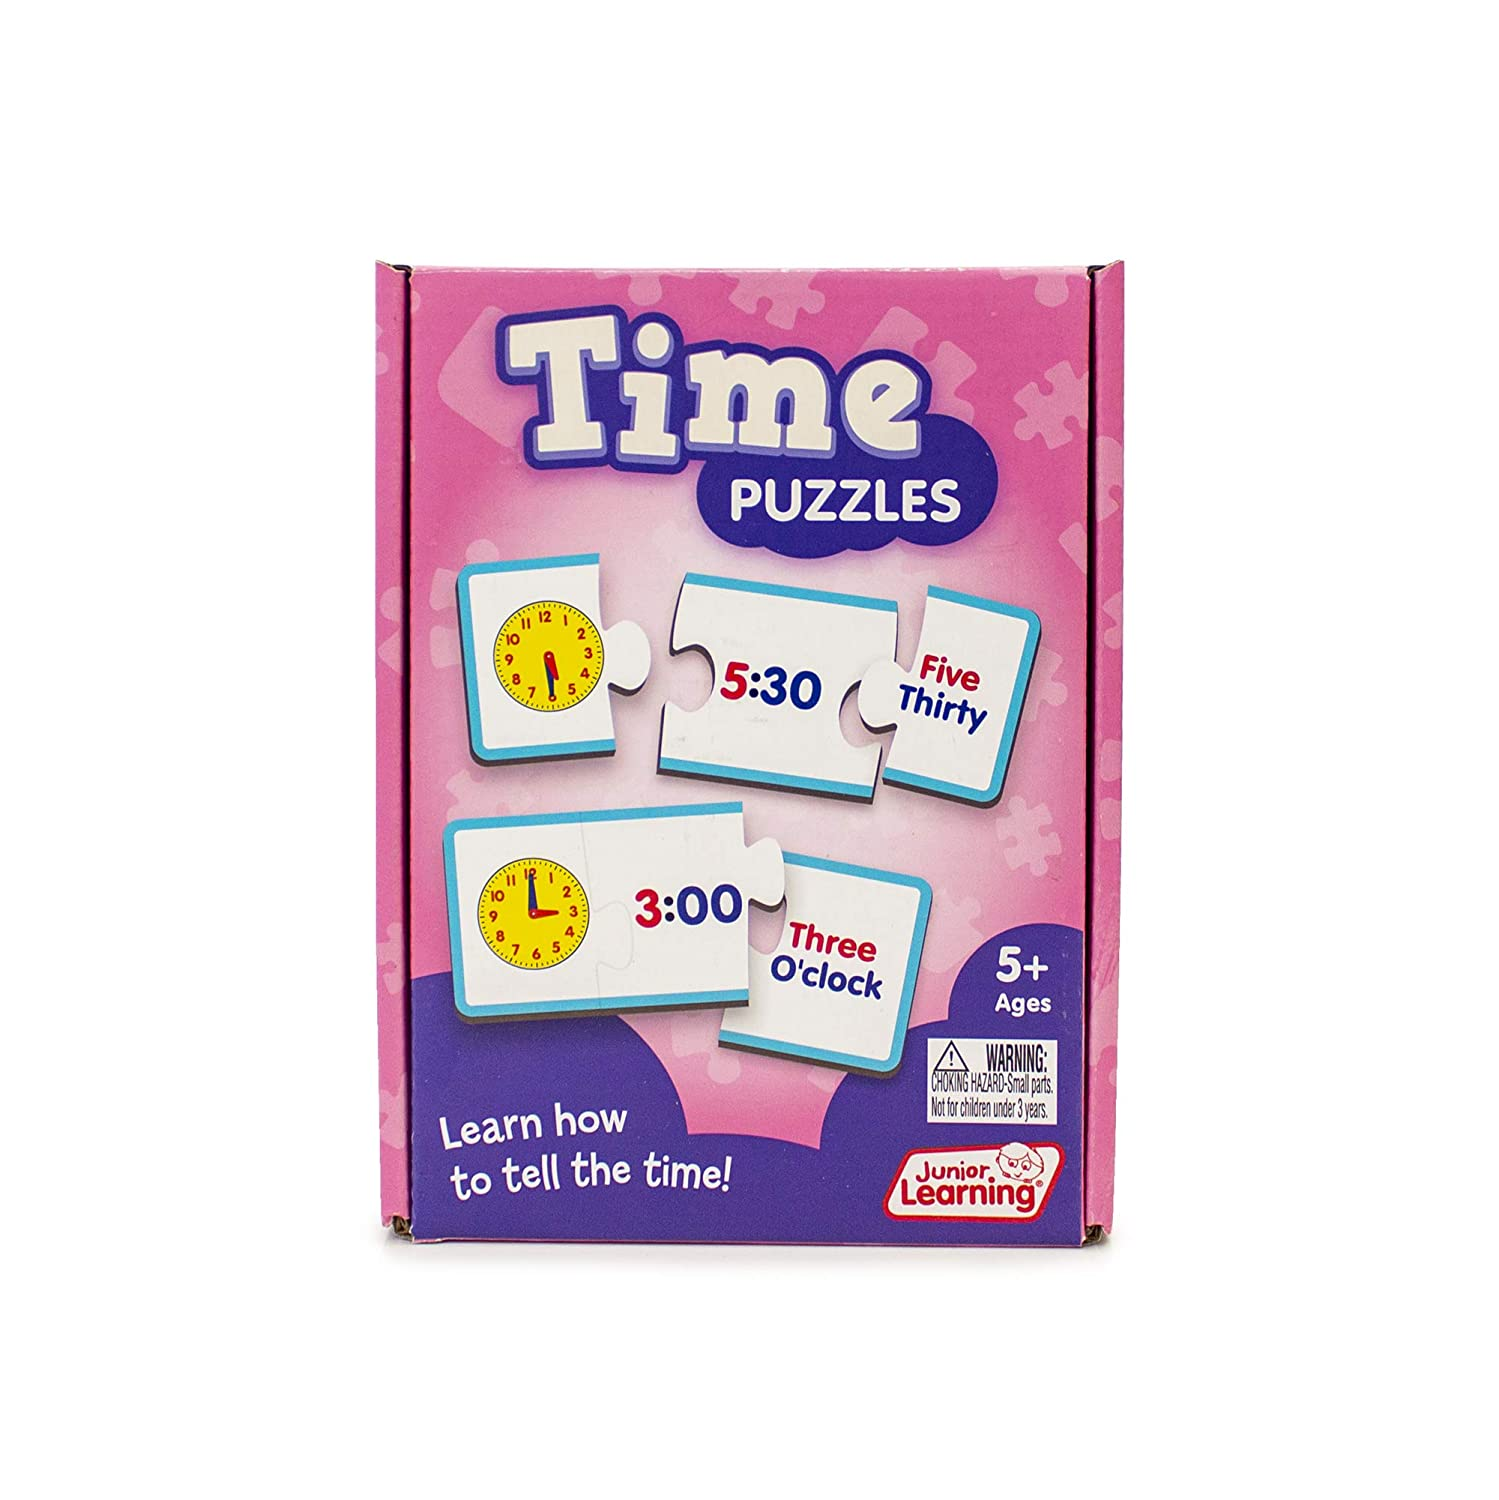 Junior Learning New arrival JL657 Rare Time Puzzles